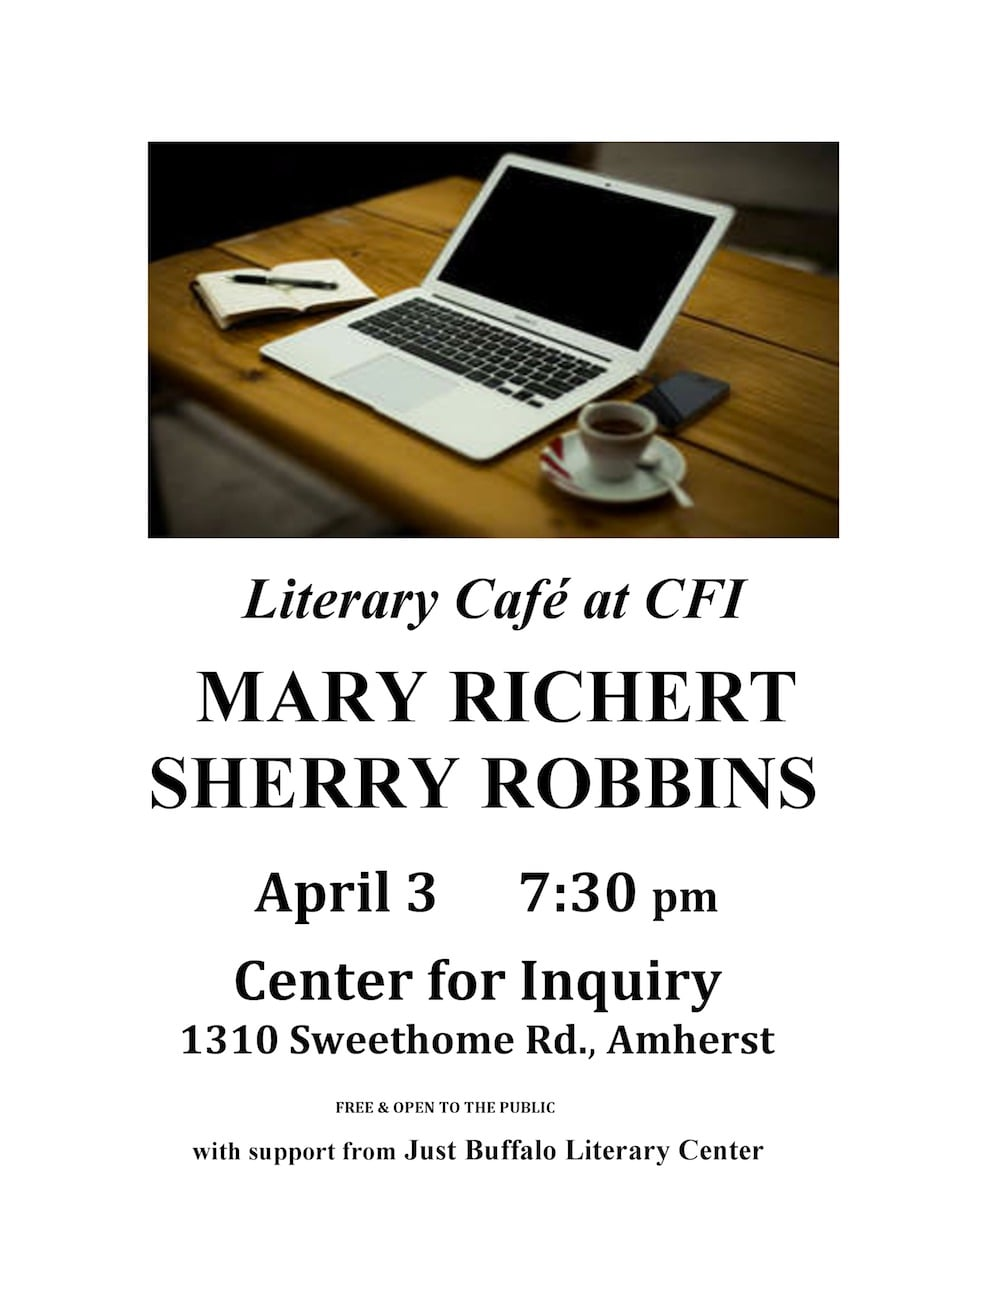 Literary Cafe at CFI: Mary Richert and Sherry Robbins